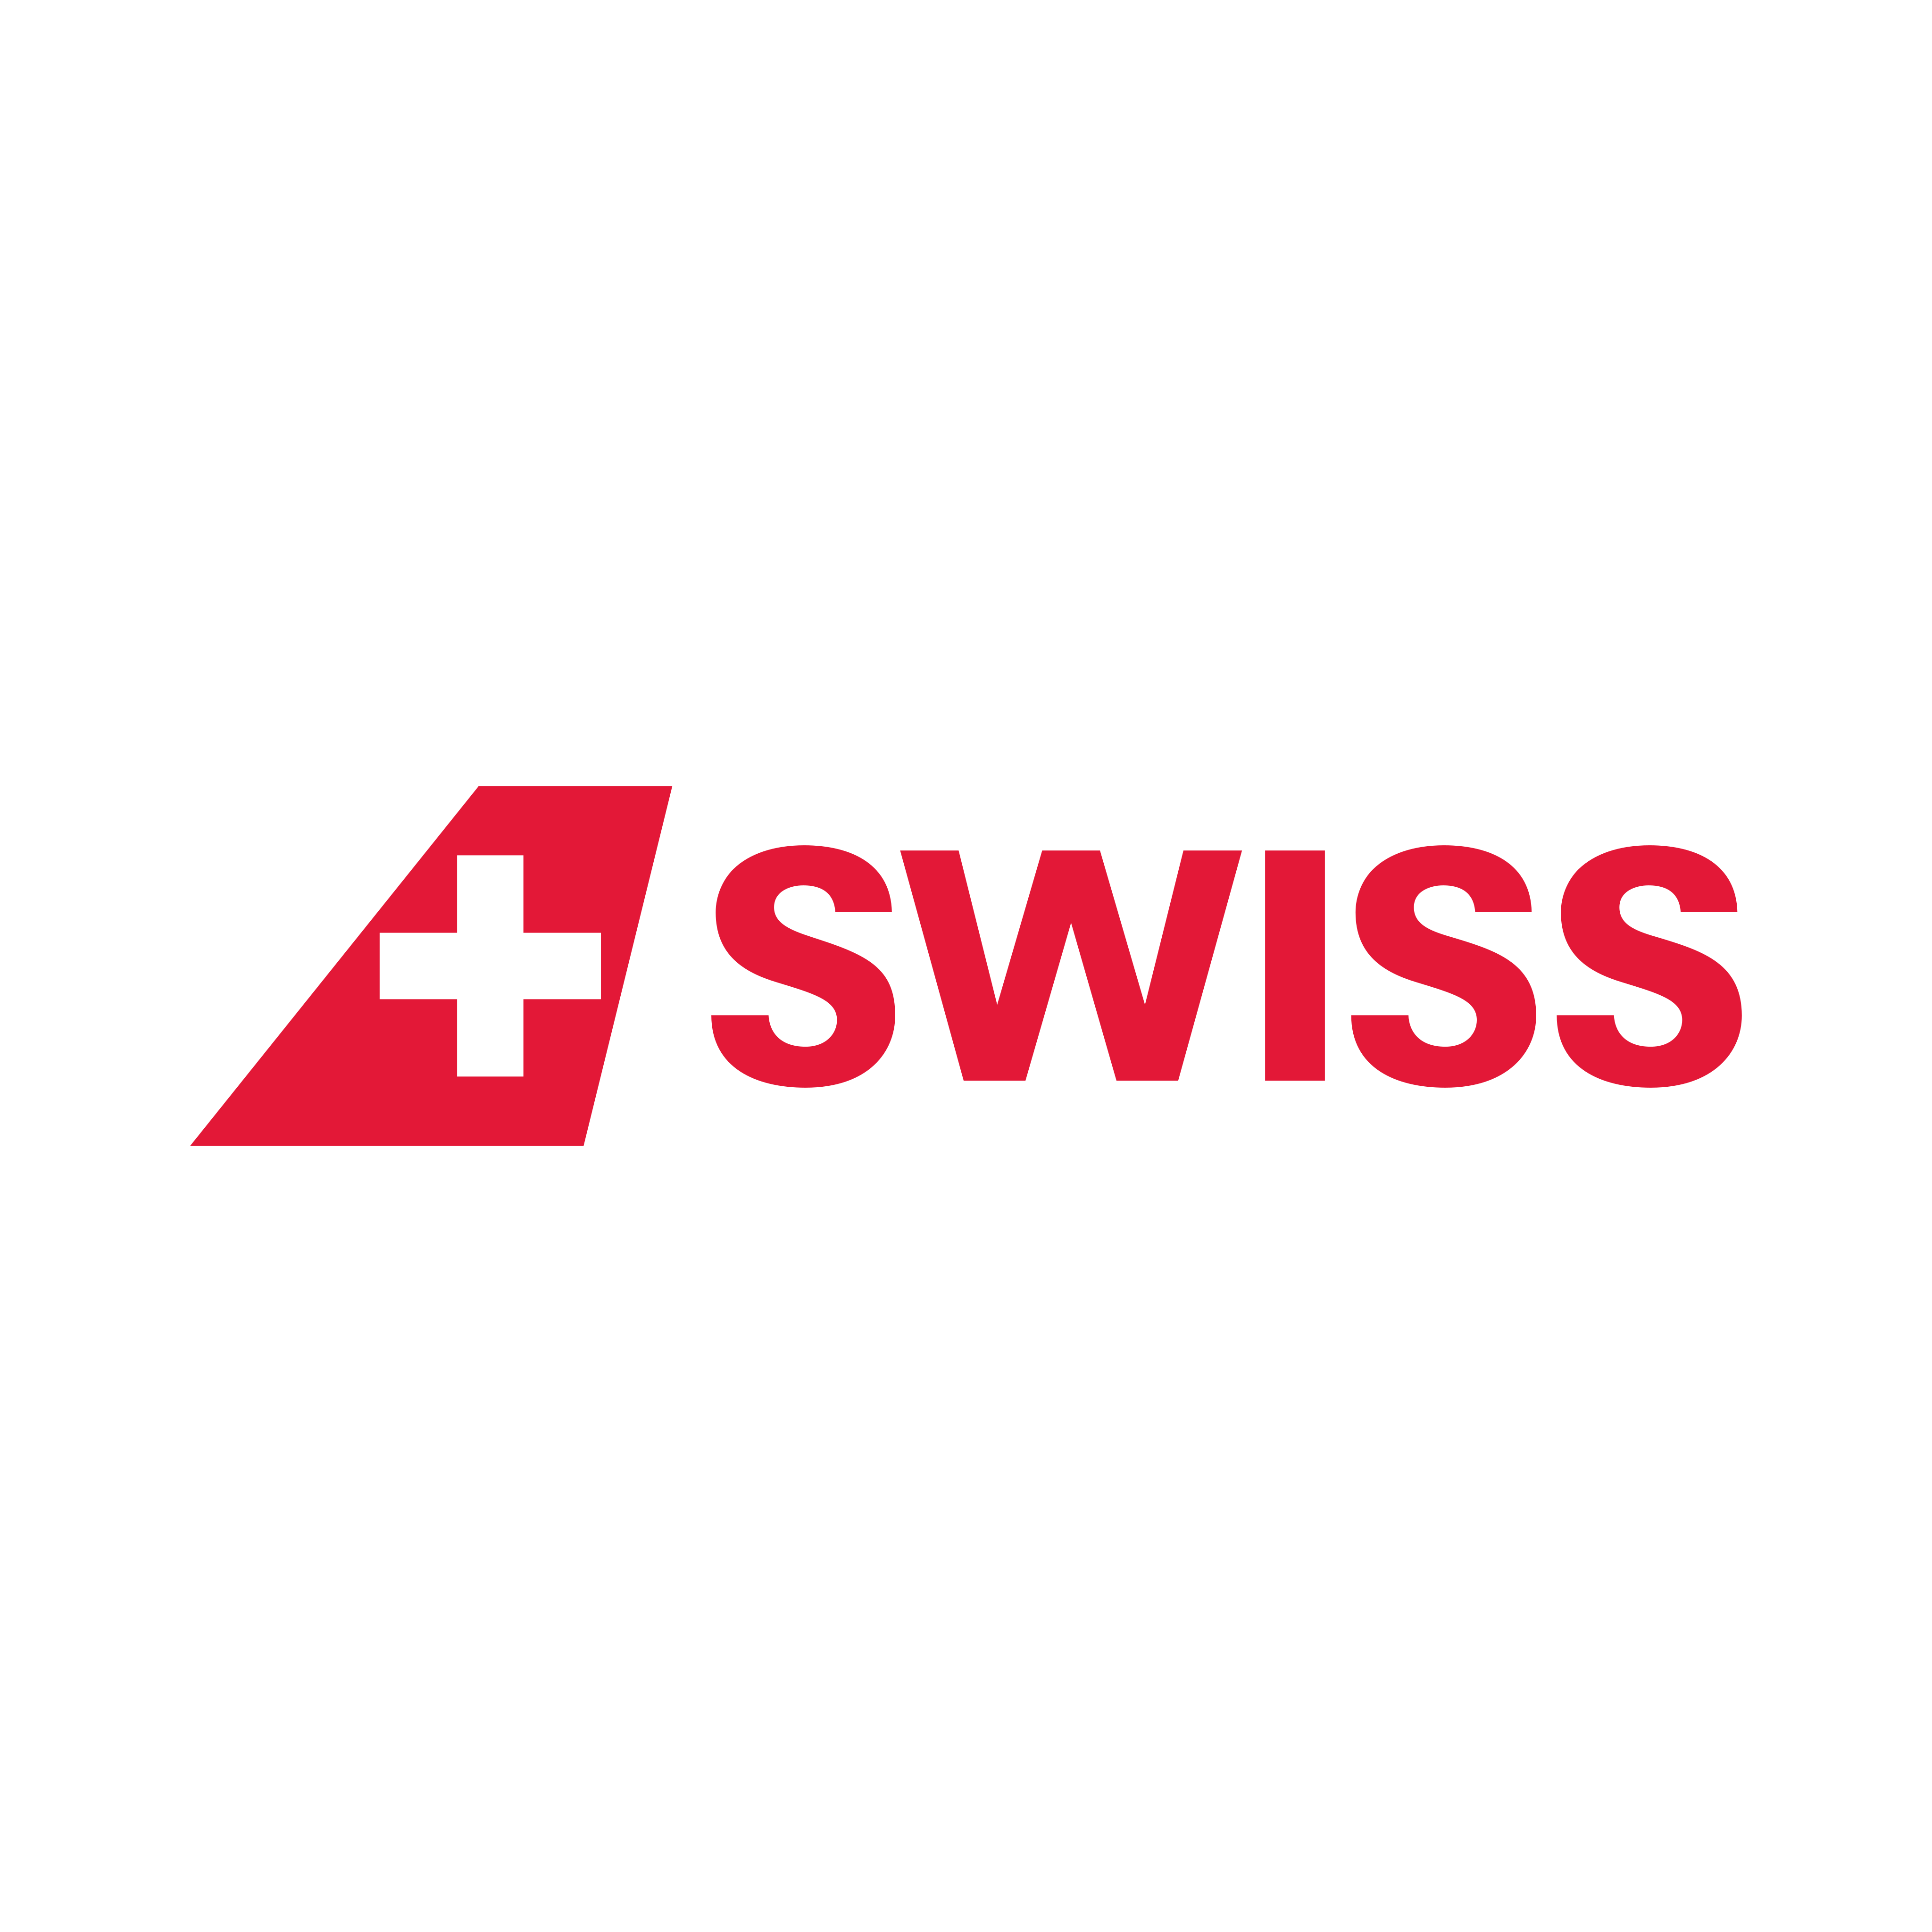 swiss air lines logo 0 - Swiss Air Lines Logo